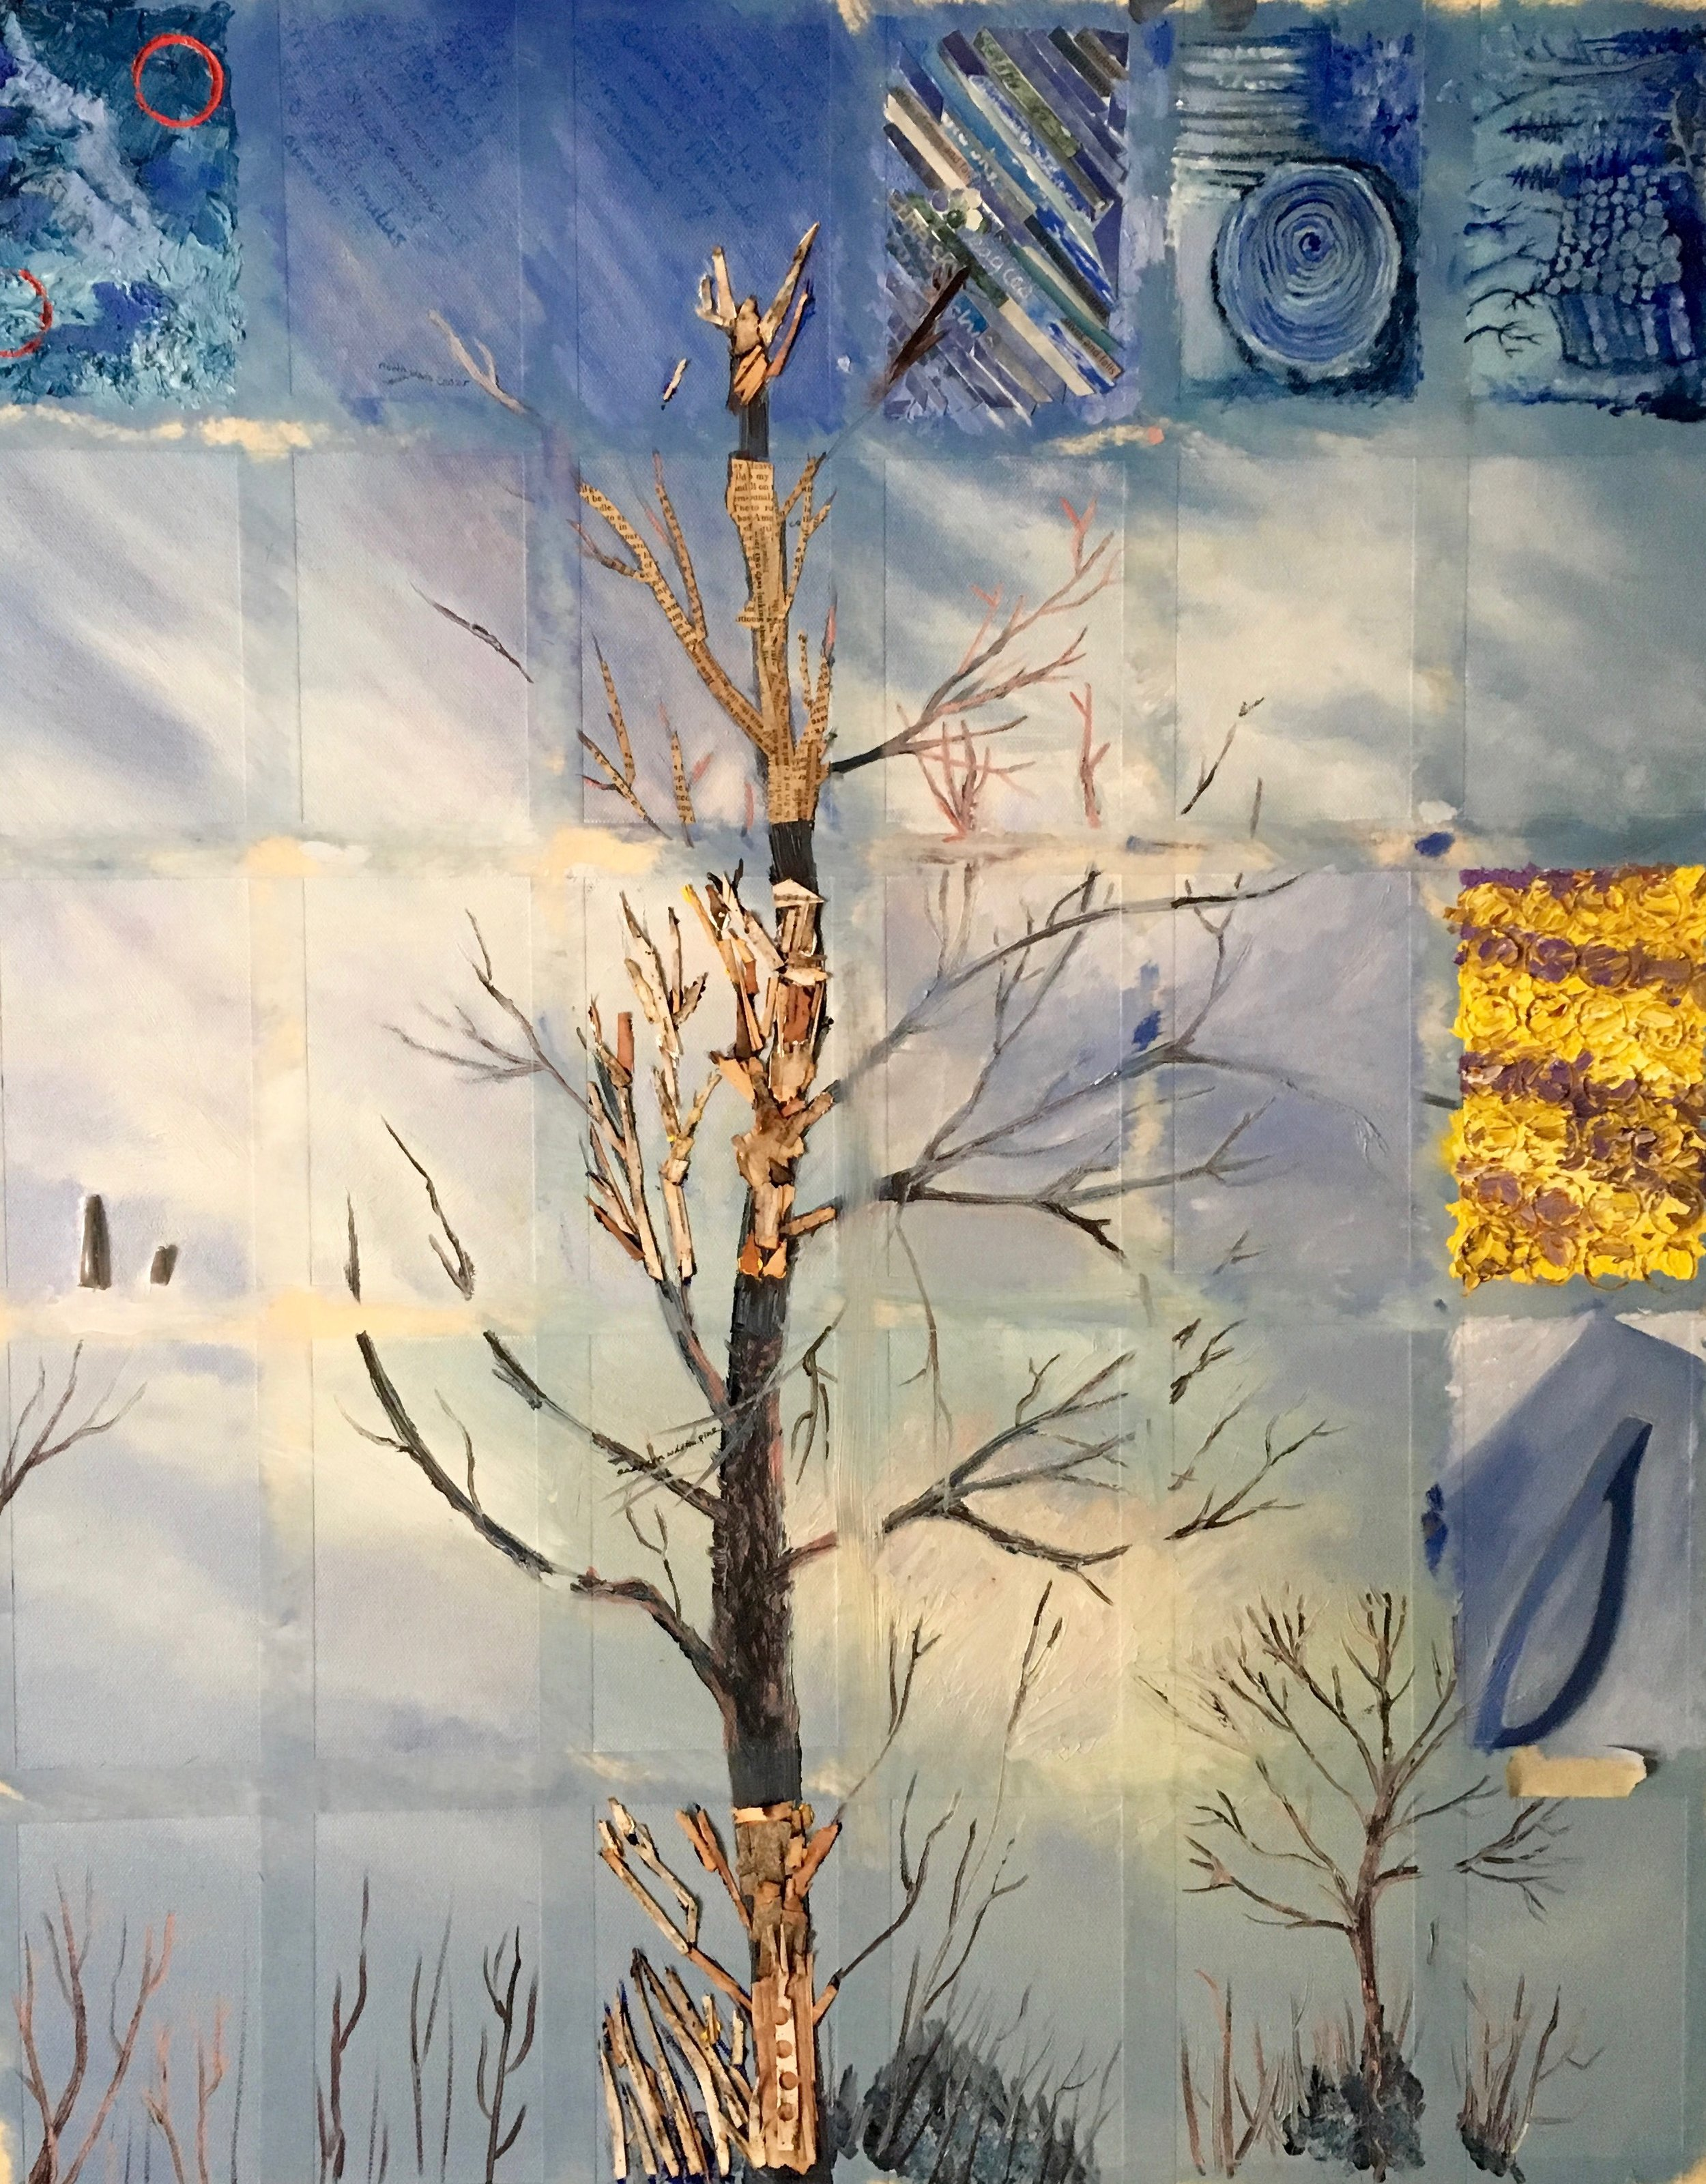 - A birch tree rises on our canvas.We give thanks to our forest friends for all the inspiration they provide.